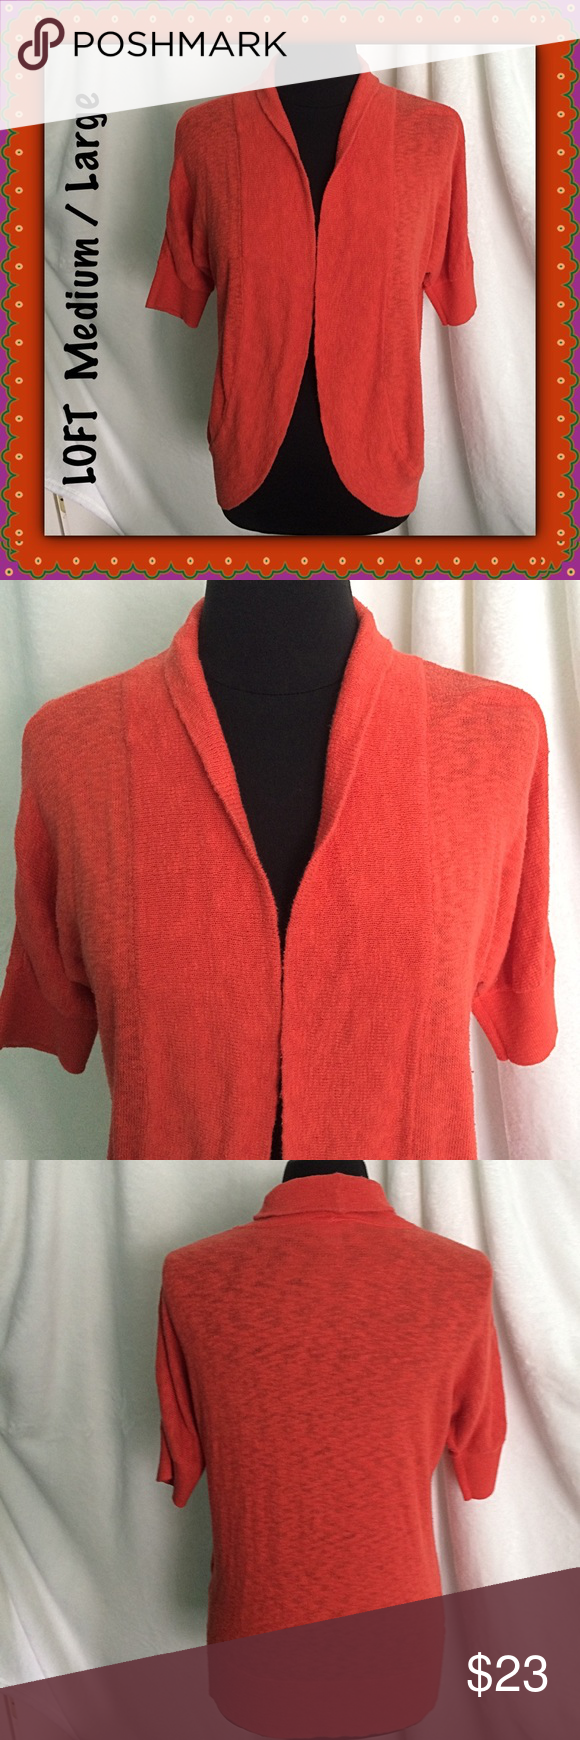 LOFT / Orange Cotton Shrug Sweater / Size M/L | Shrug sweater ...